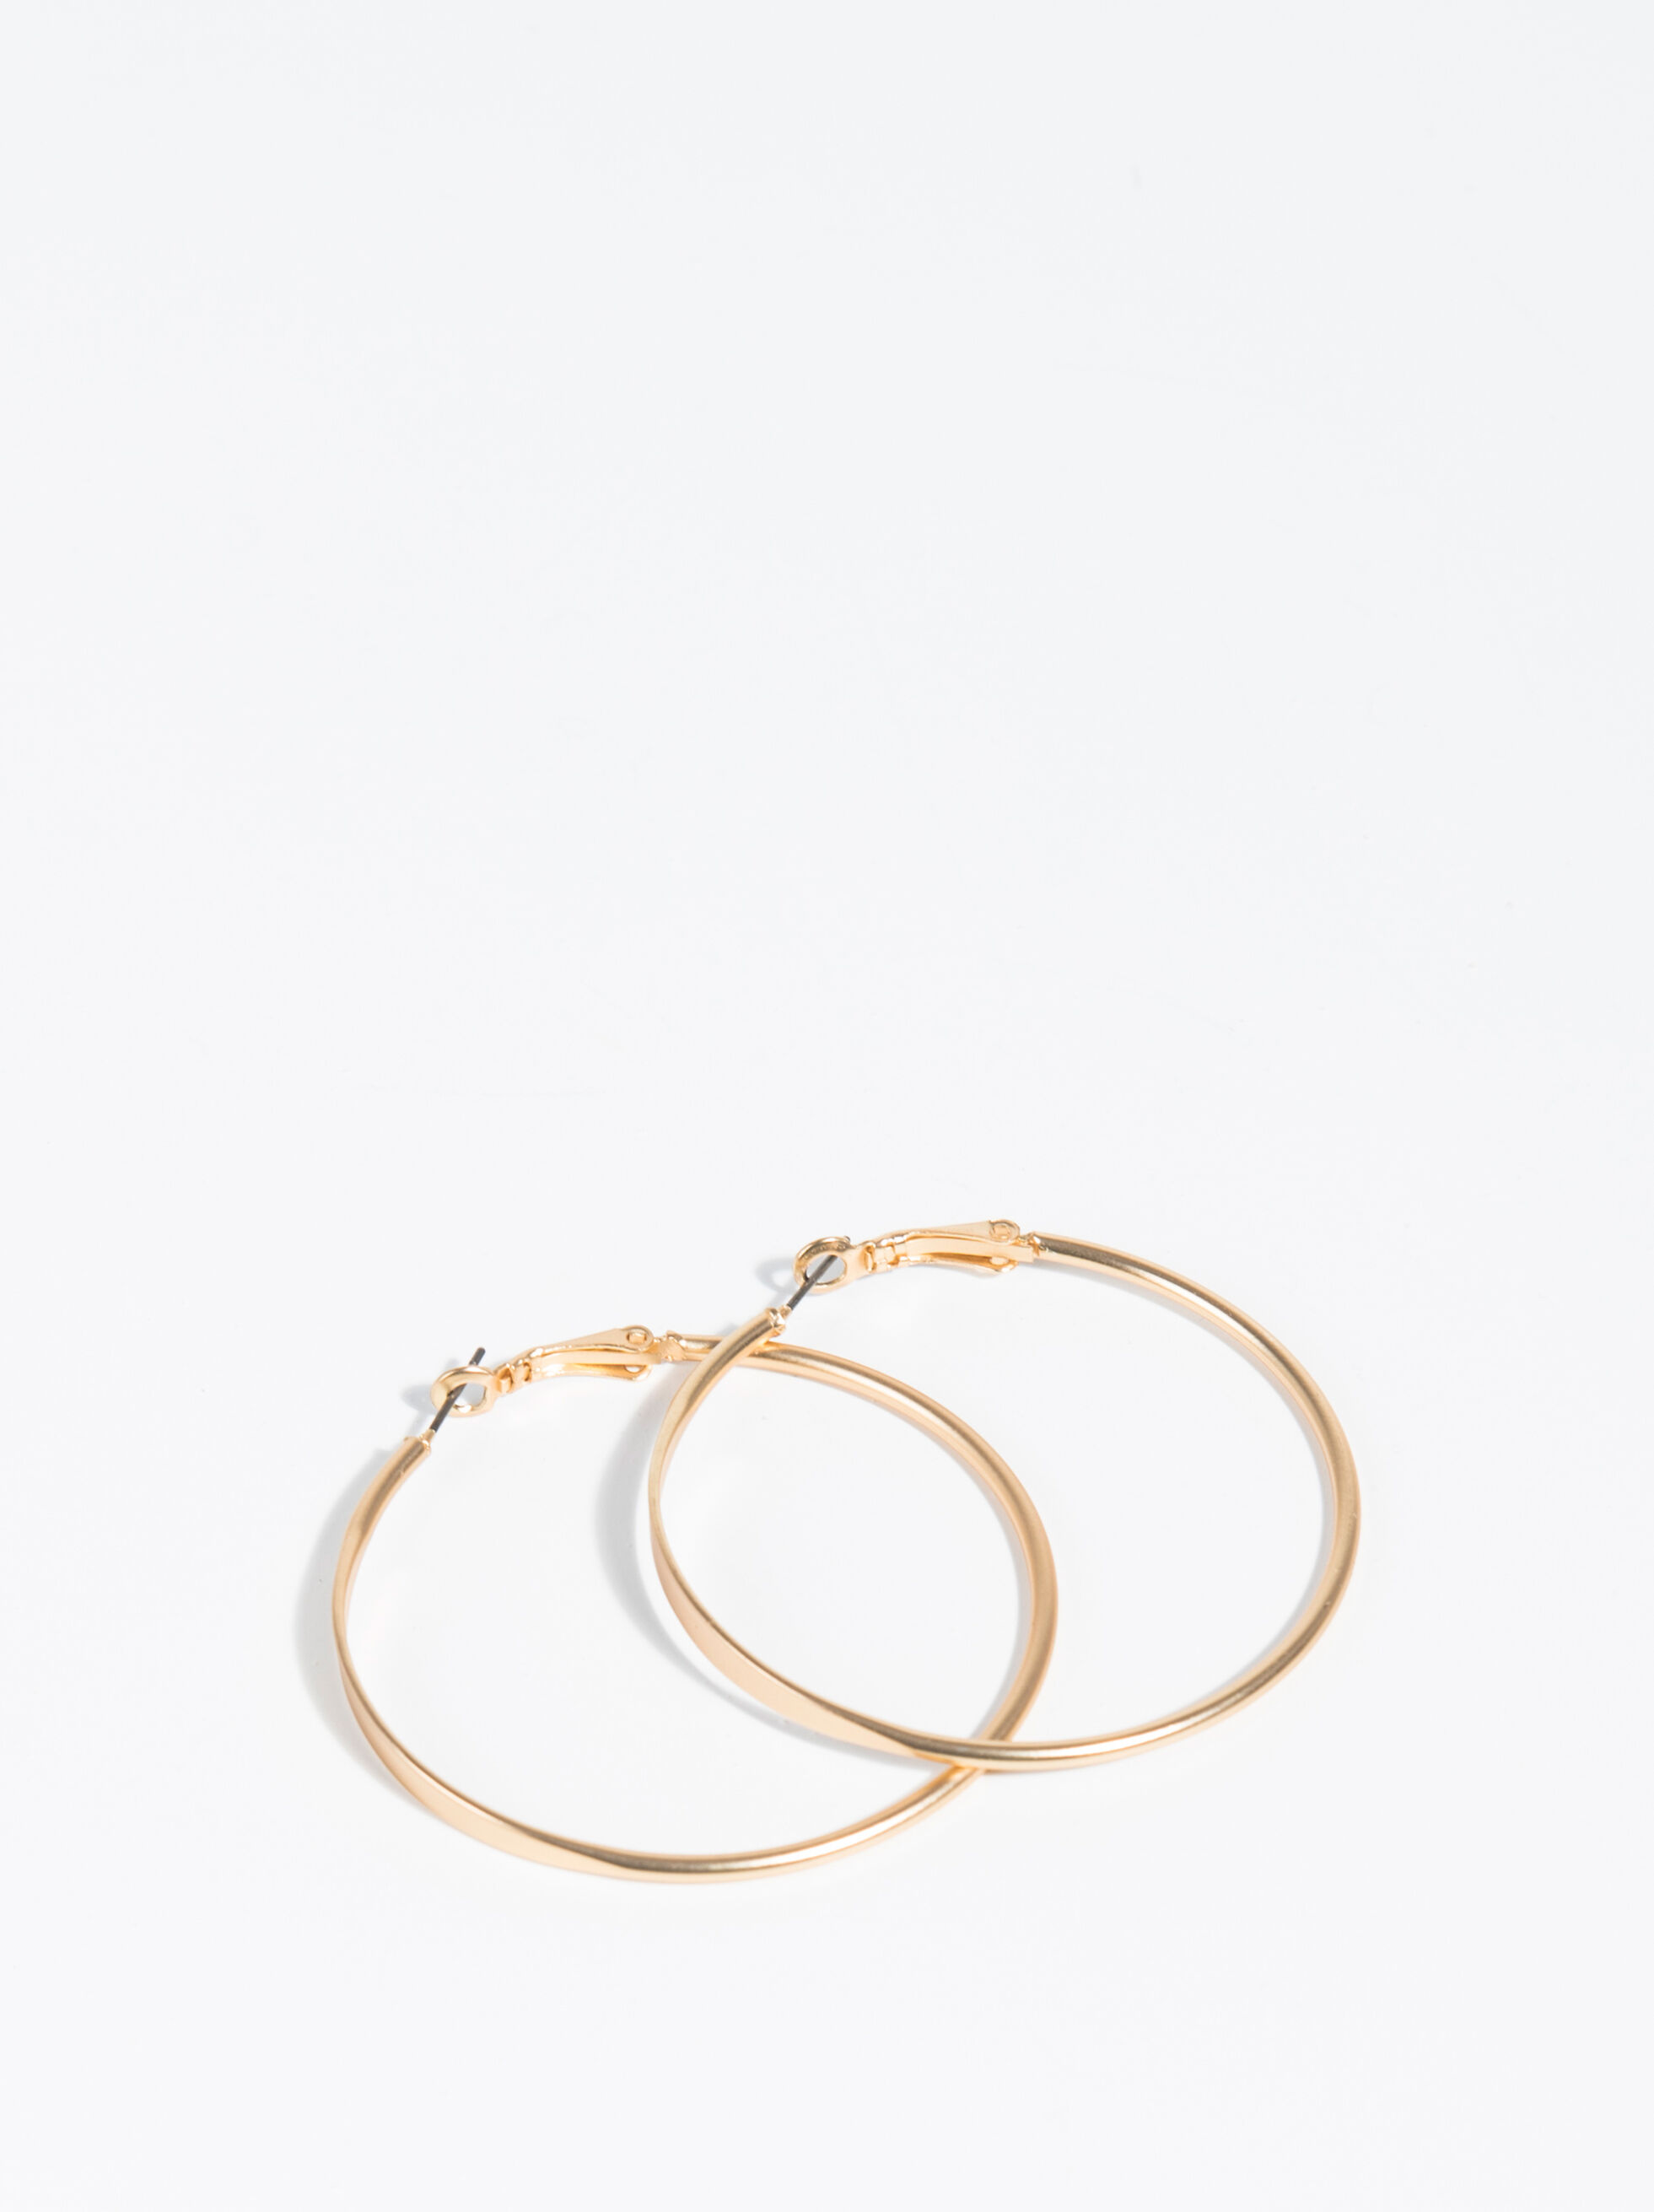 Golden Basics Large Hoop-Earrings, , hi-res